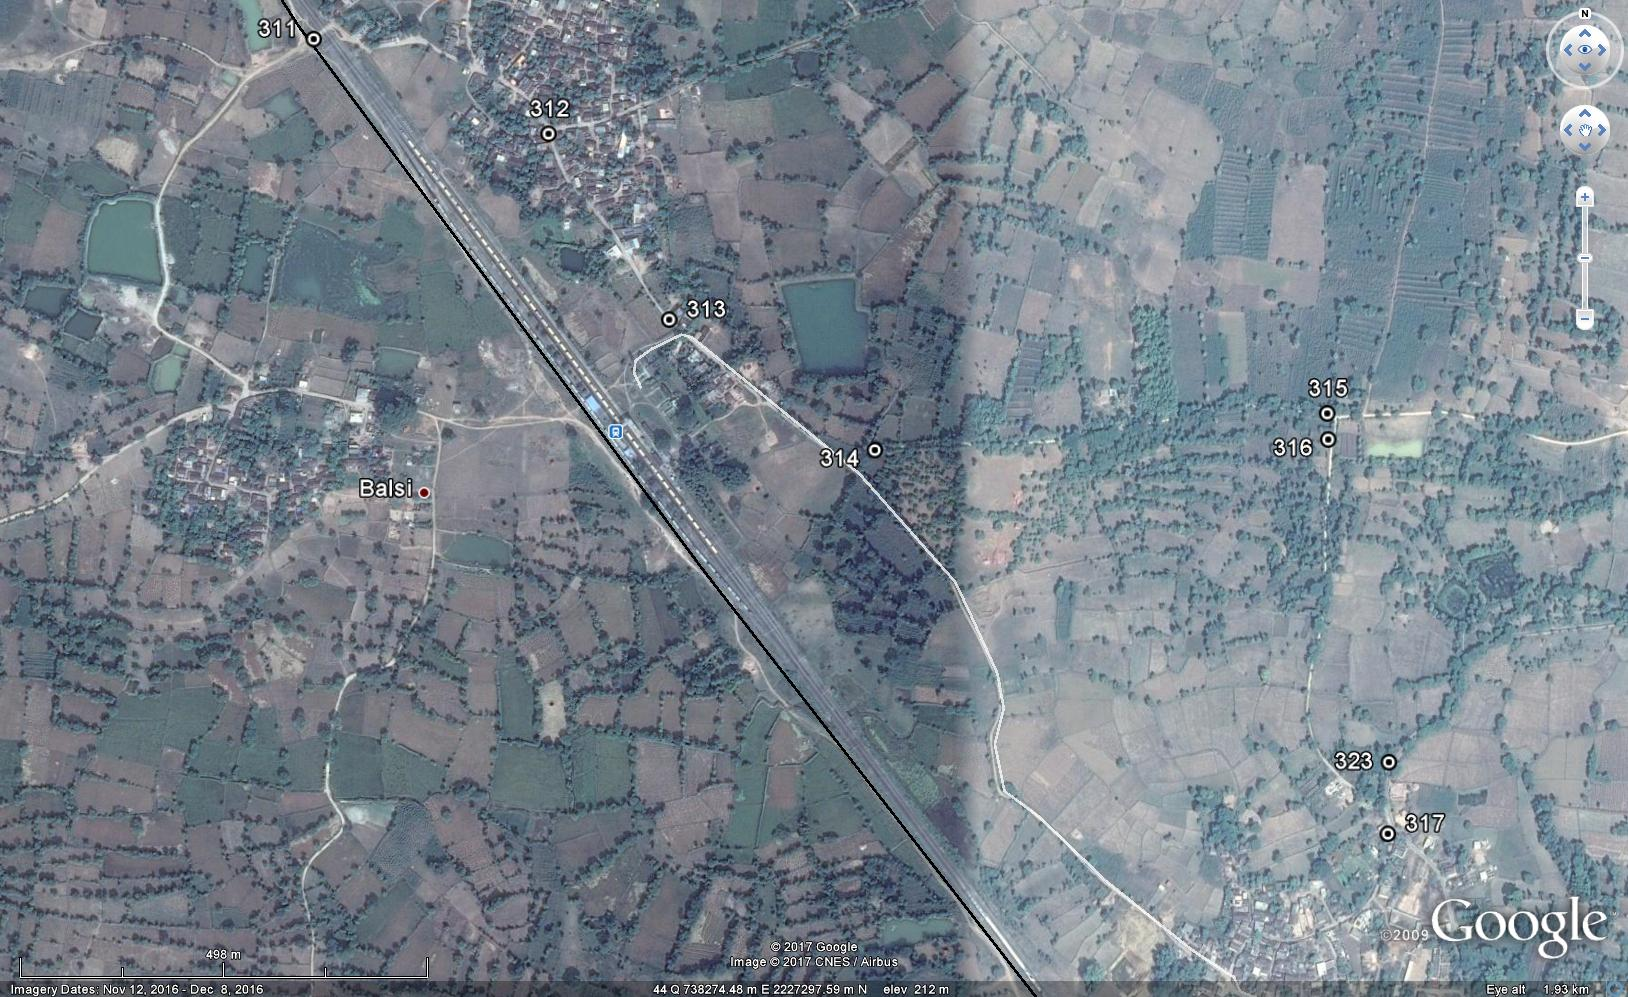 Survey Demarcation, Preparing Proposal For Relocation Of Pipe Line In Specified Stretches Of Rising In Consultation With Railway Authorities At Lanjigarh, Kalahandi, Orissa